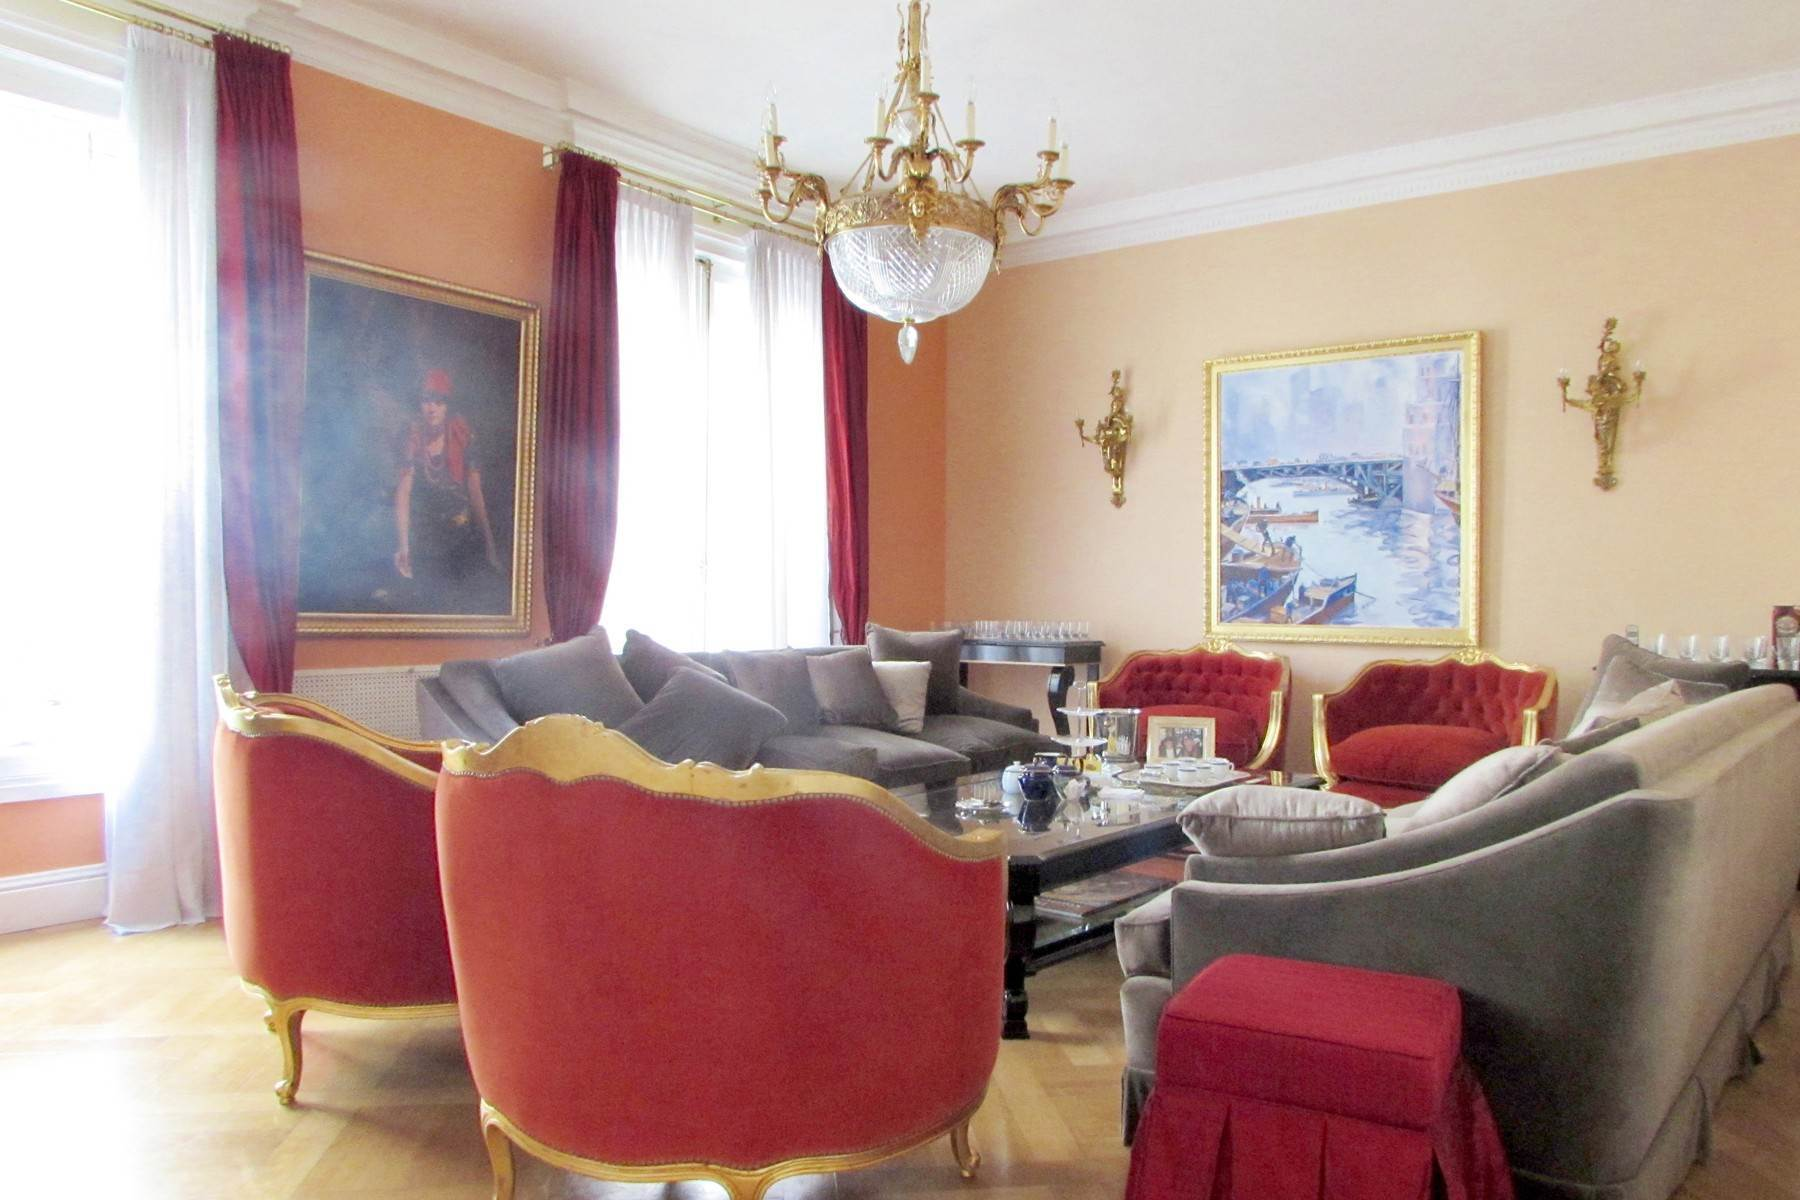 Apartments for Sale at French style apartment Marcelo T de Alvear 800, Buenos Aires, Buenos Aires, C1058AAJ Argentina